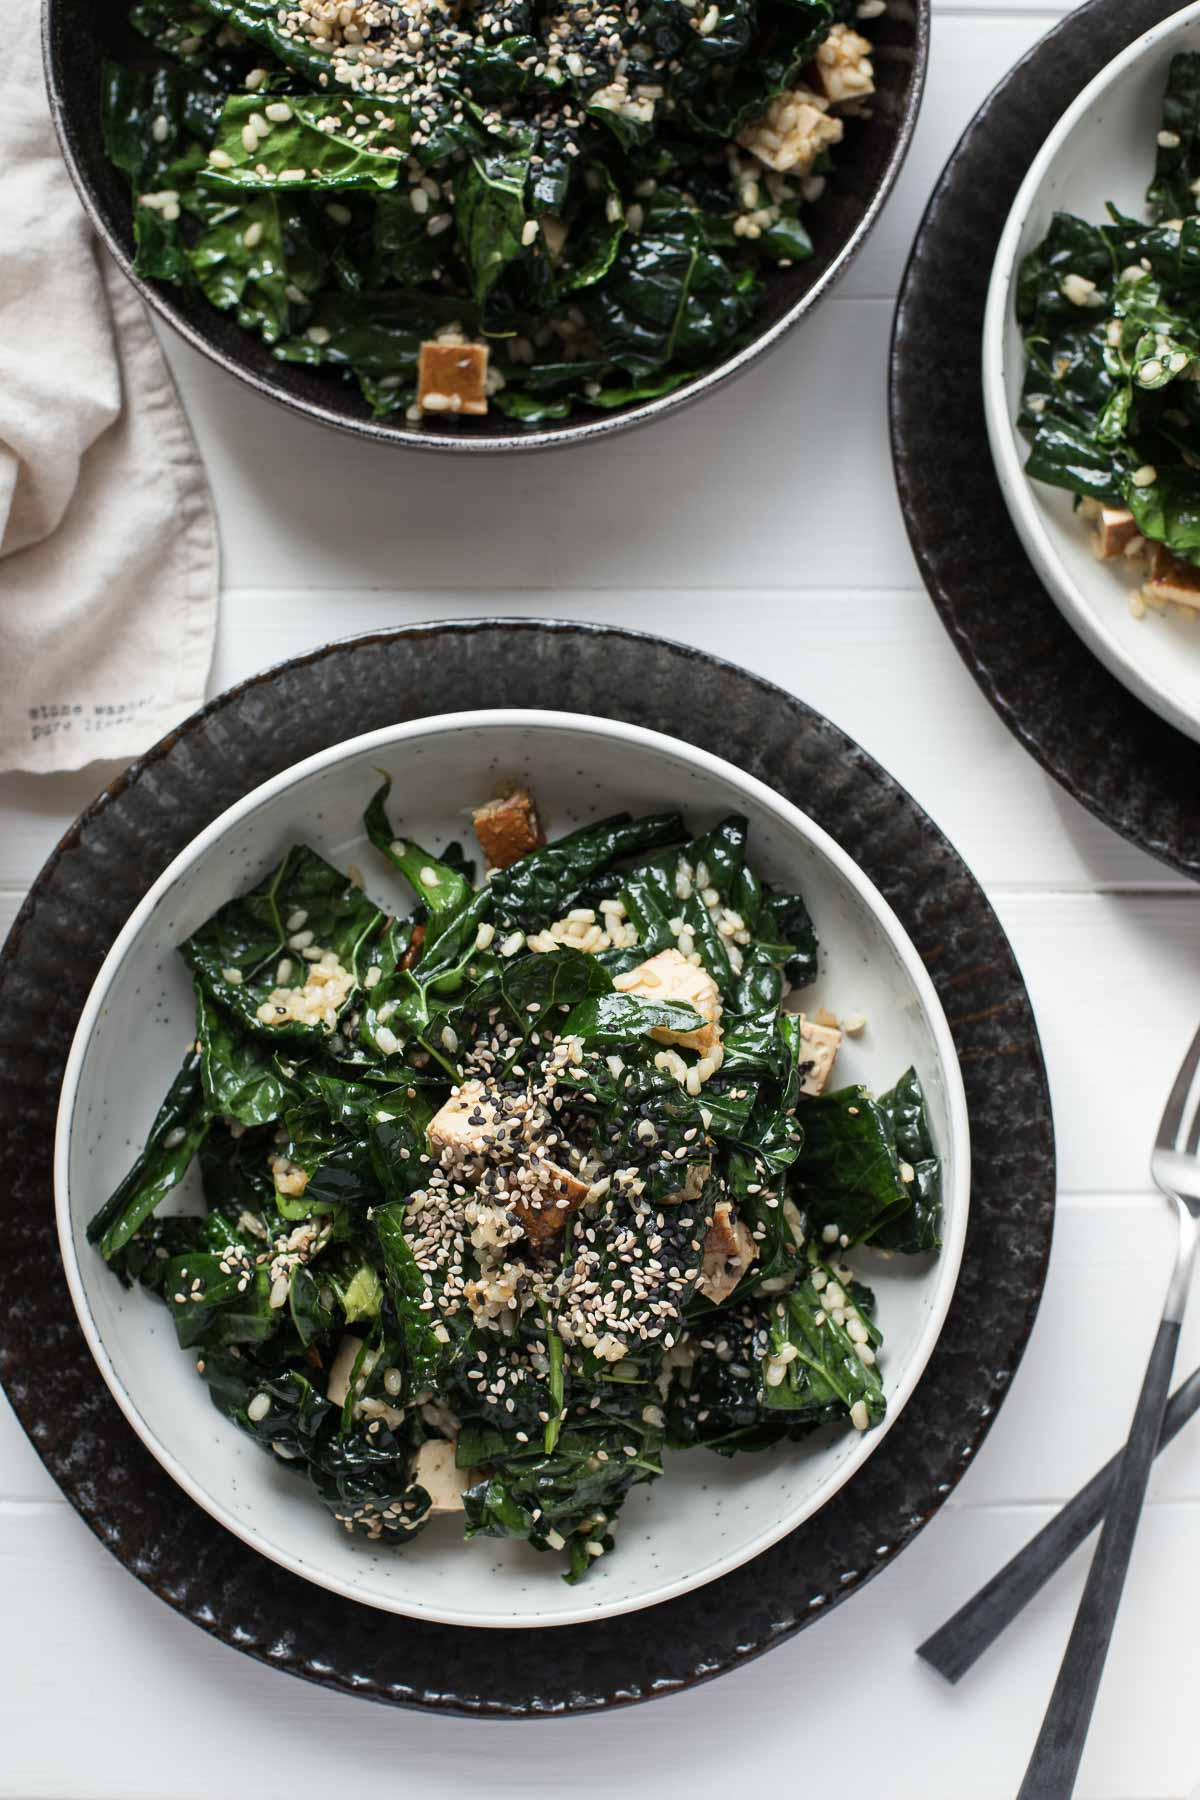 Asian-Style Kale Salad with Brown Rice and Smoked Tofu